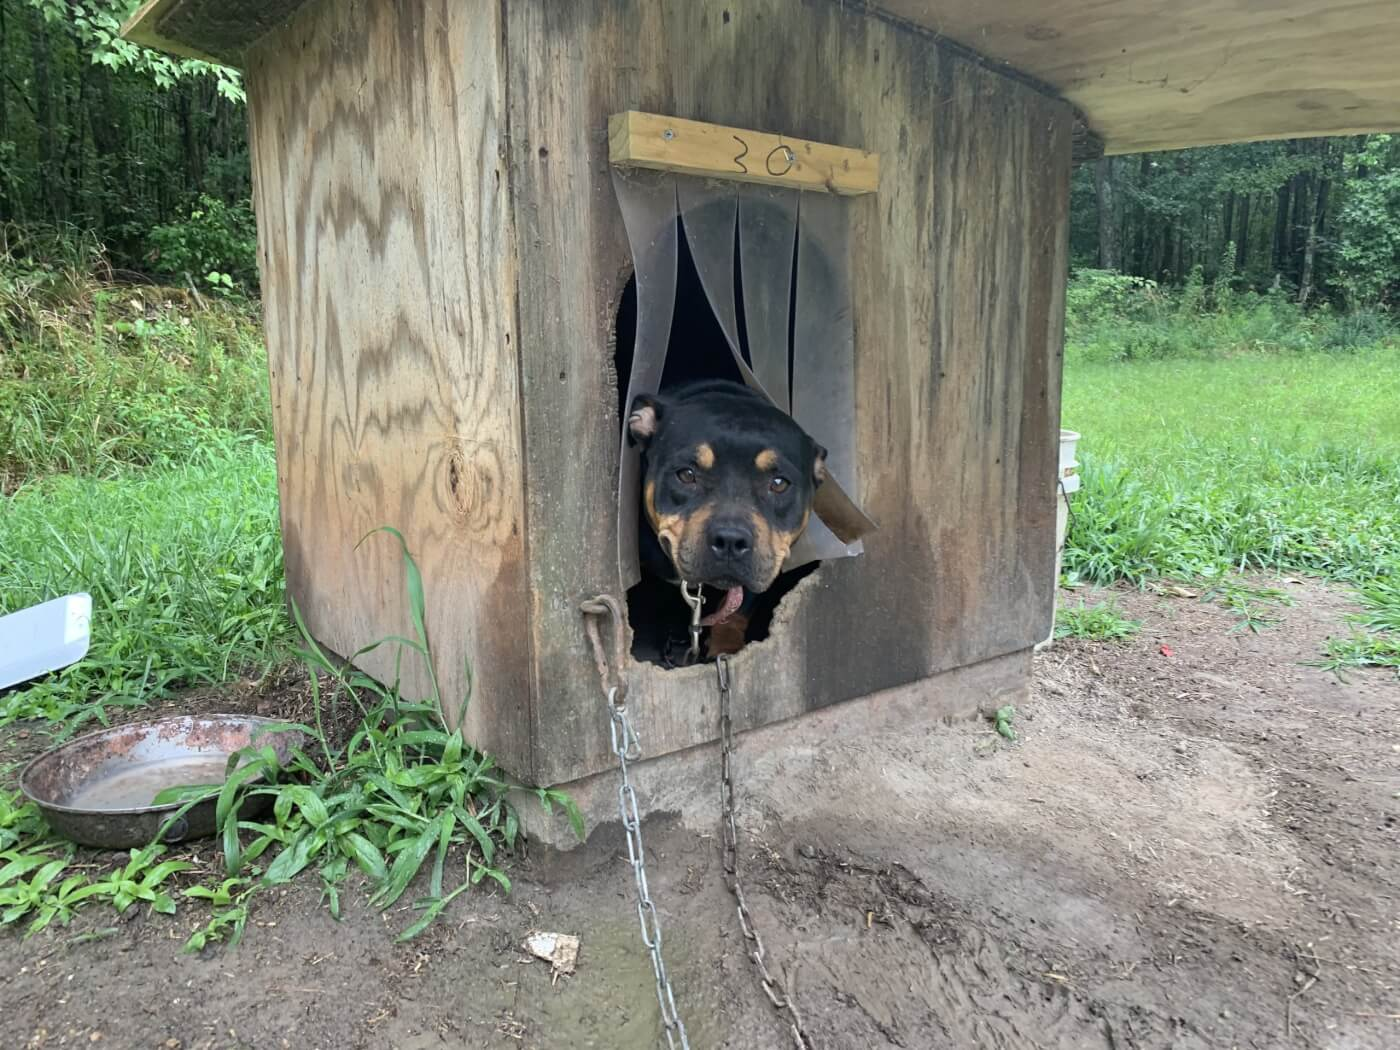 Cupcake the dog chained to a doghouse